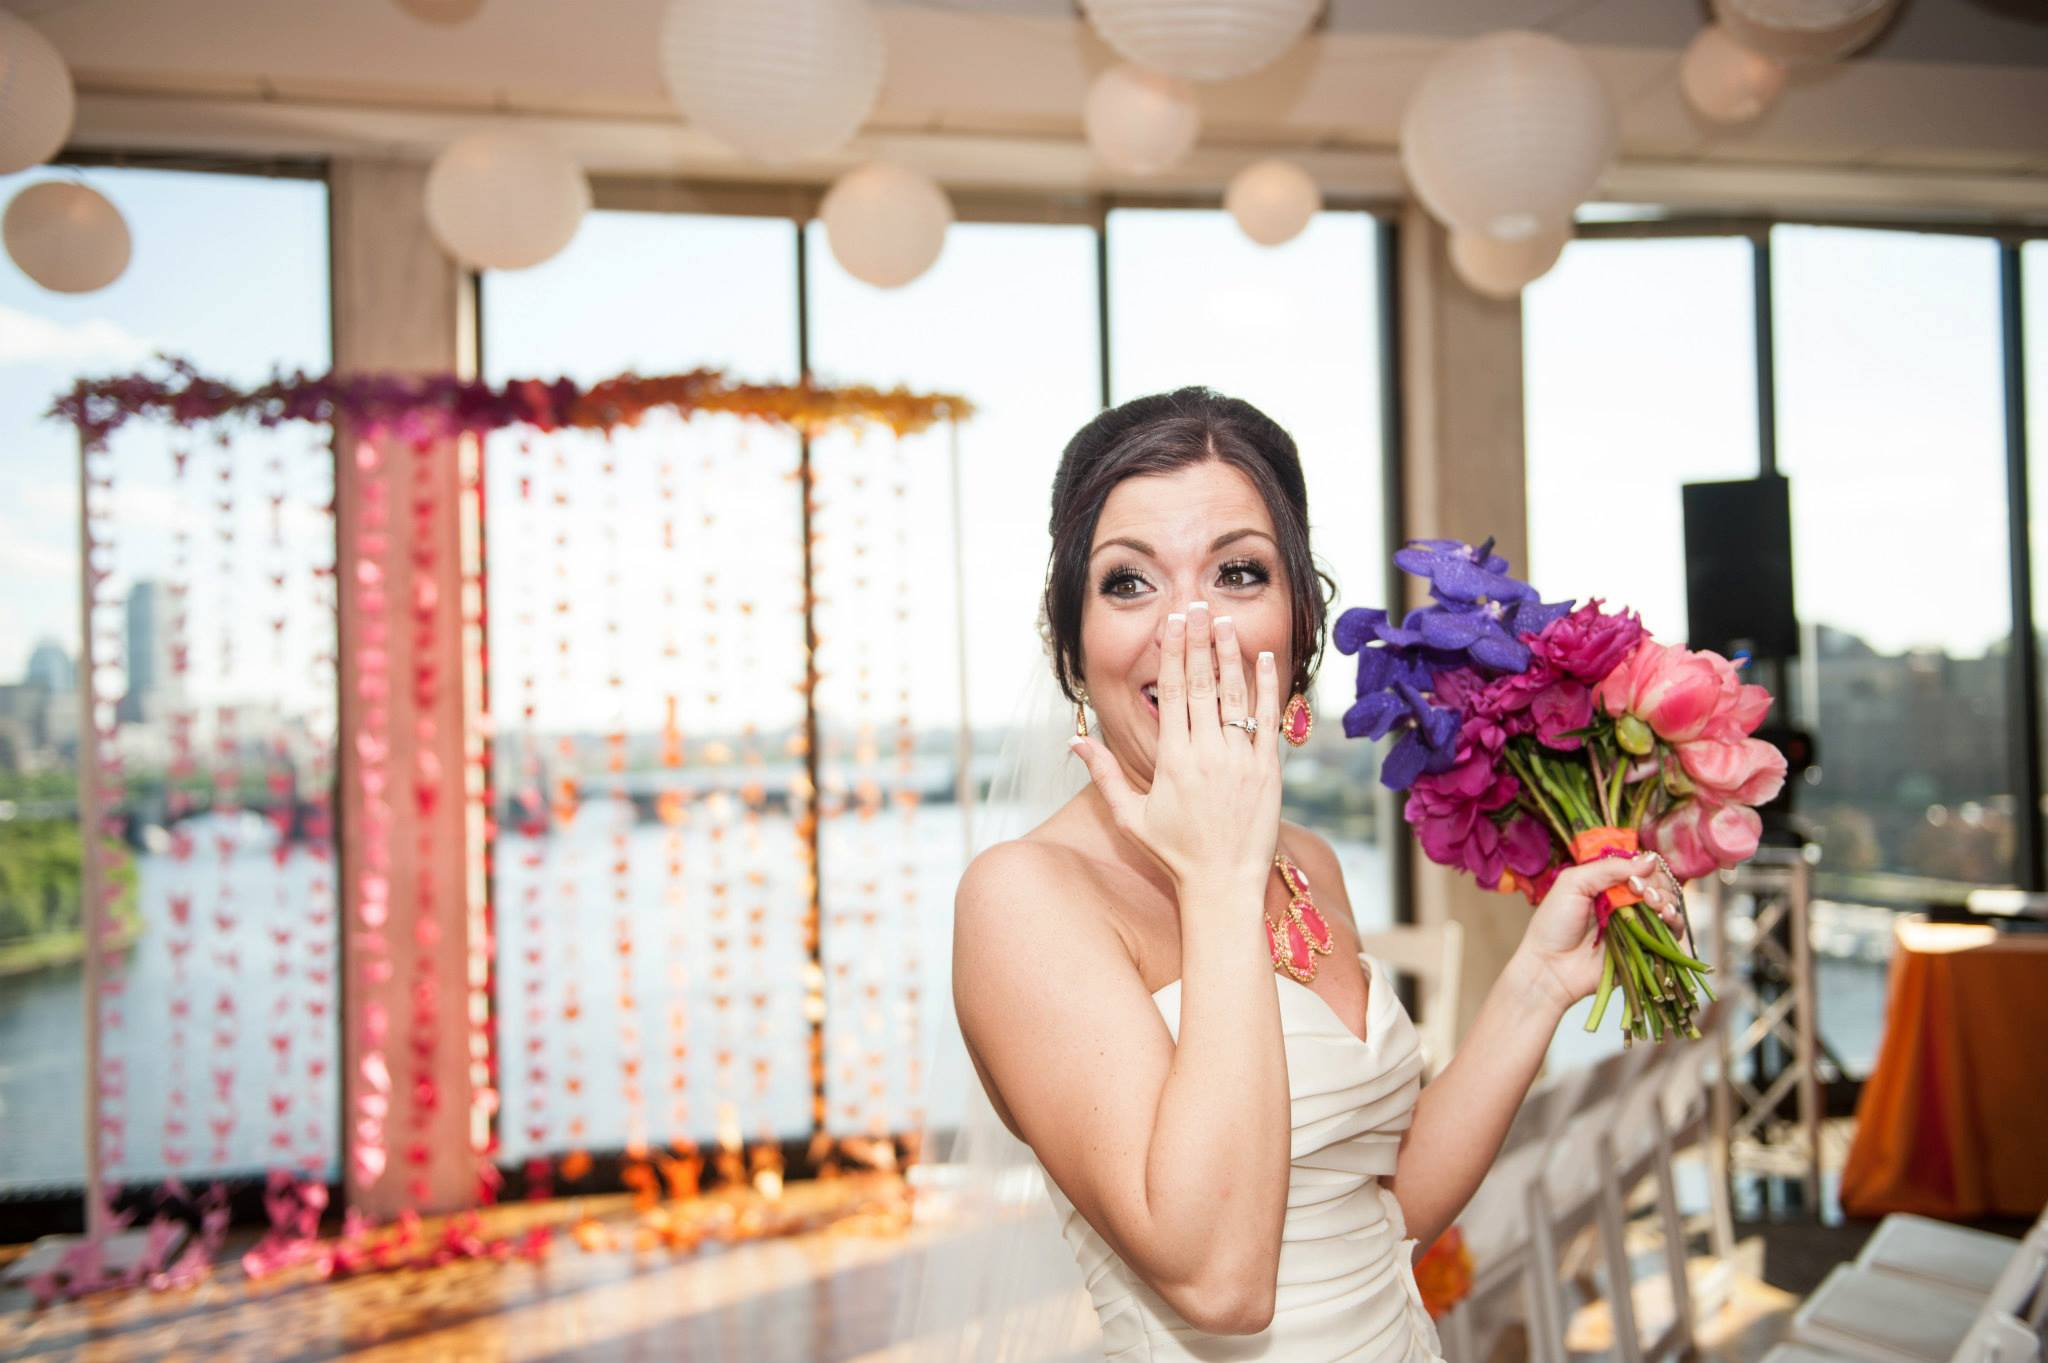 Custom ombre 1000 paper crane ceremony backdrop overlooking the Boston skyline. Image by Todd Ward.